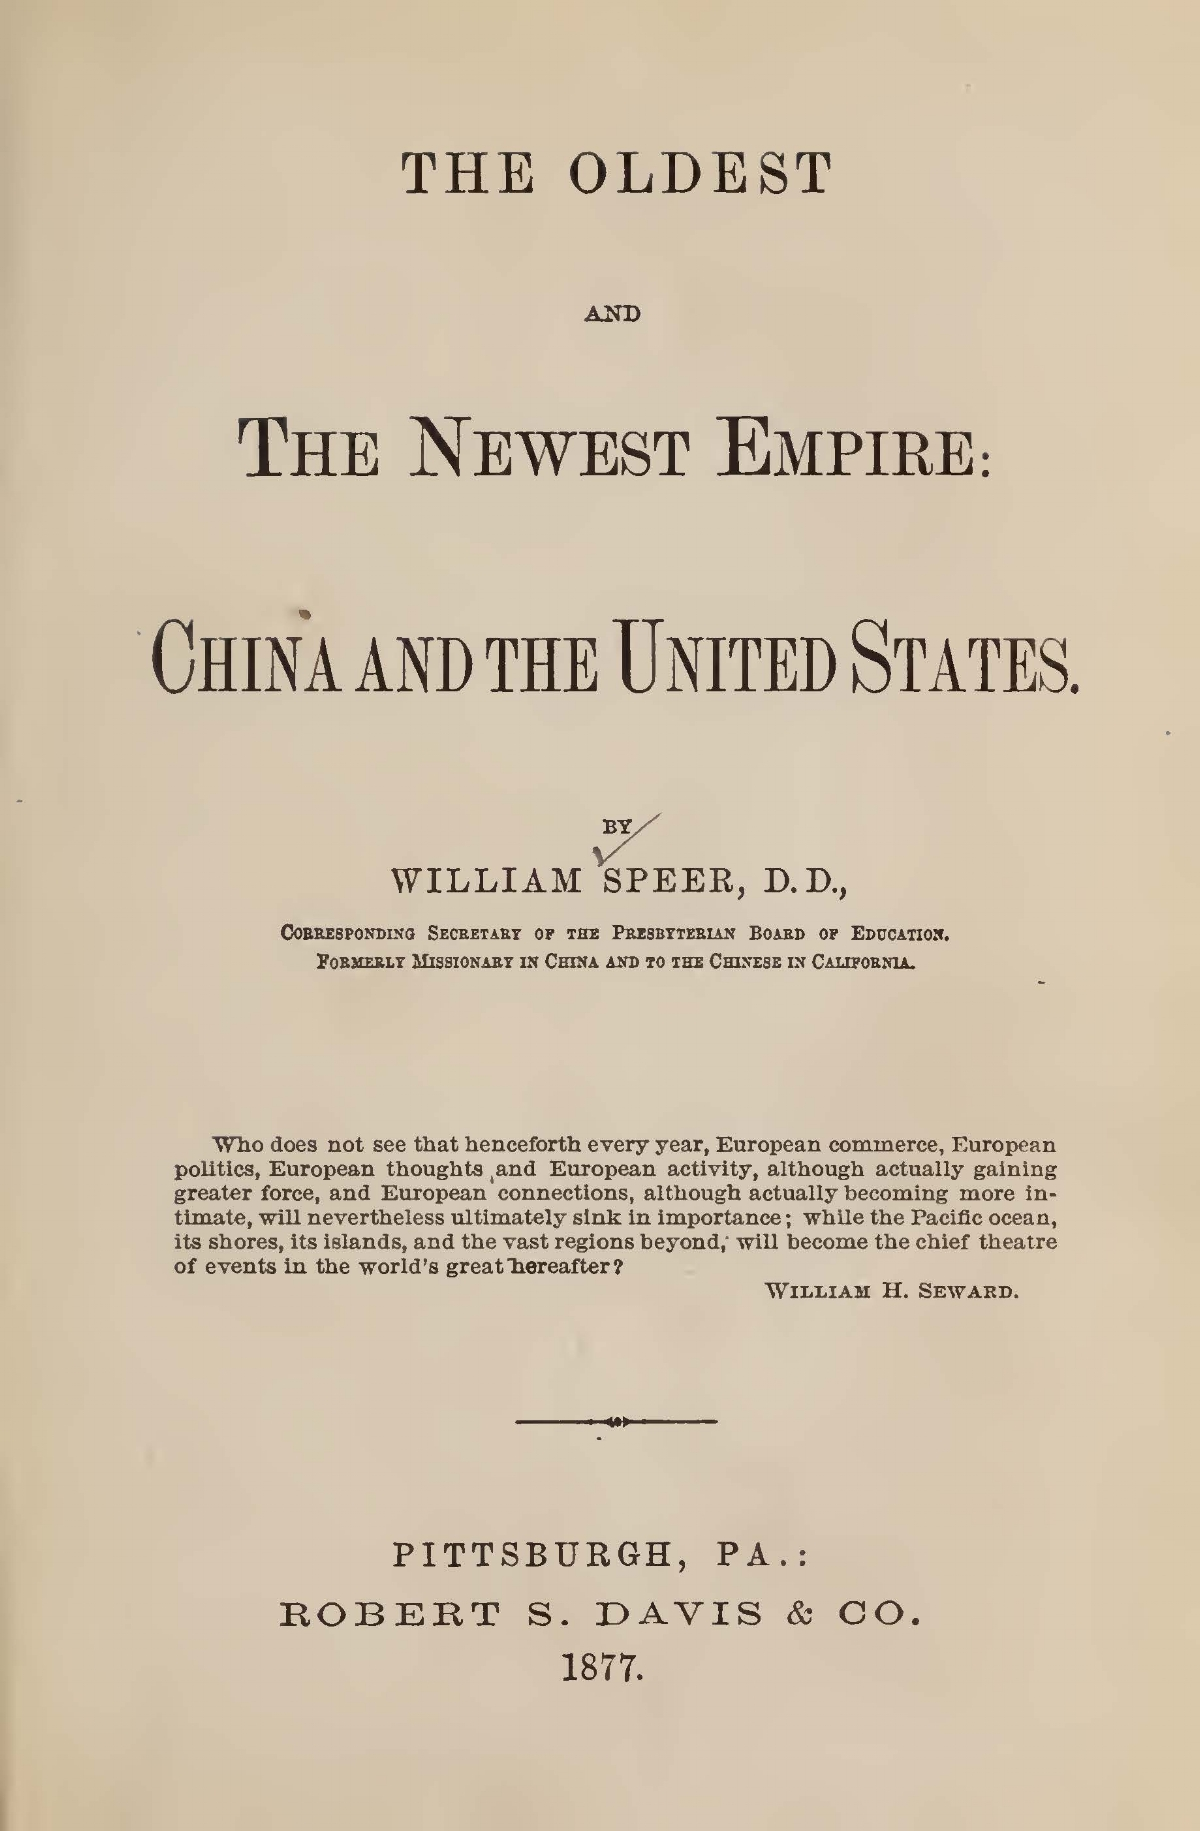 Speer, William, The Oldest and Newest Empire China and the United States Title Page.jpg